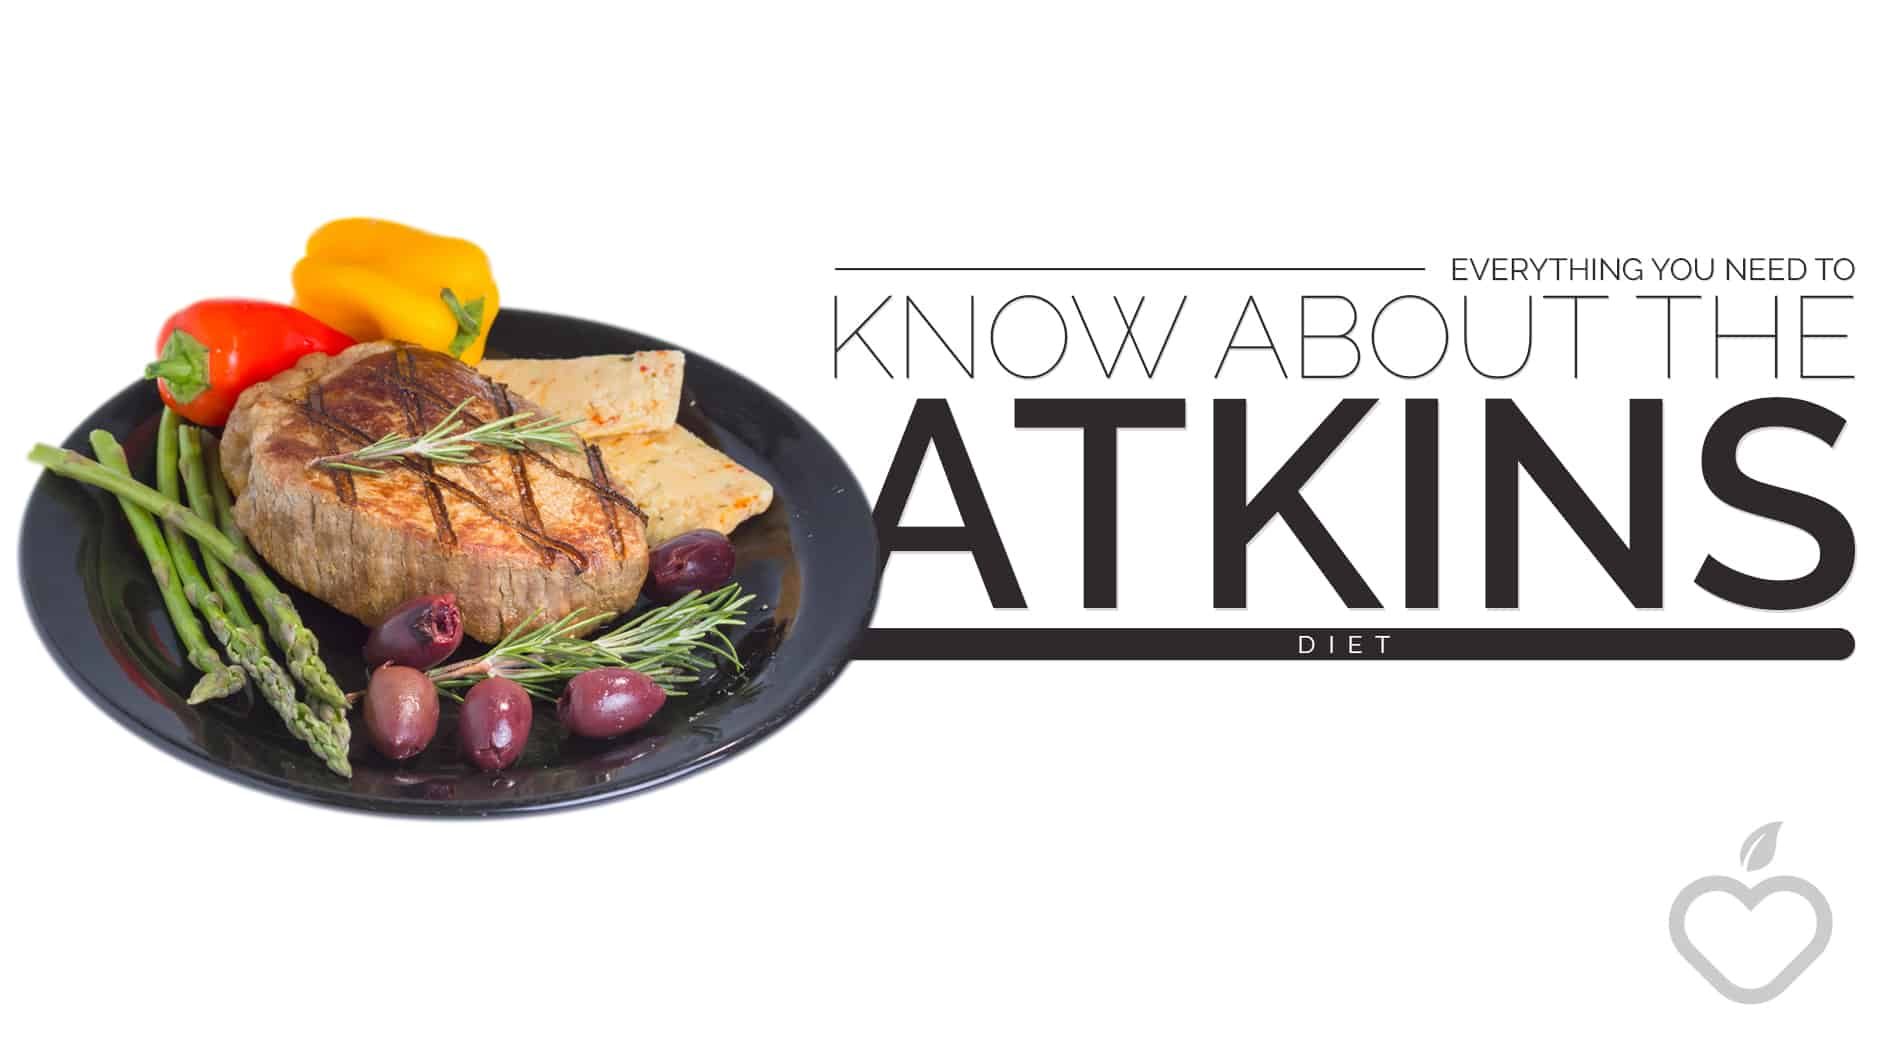 Watch Atkins diet: Know all about this new diet video